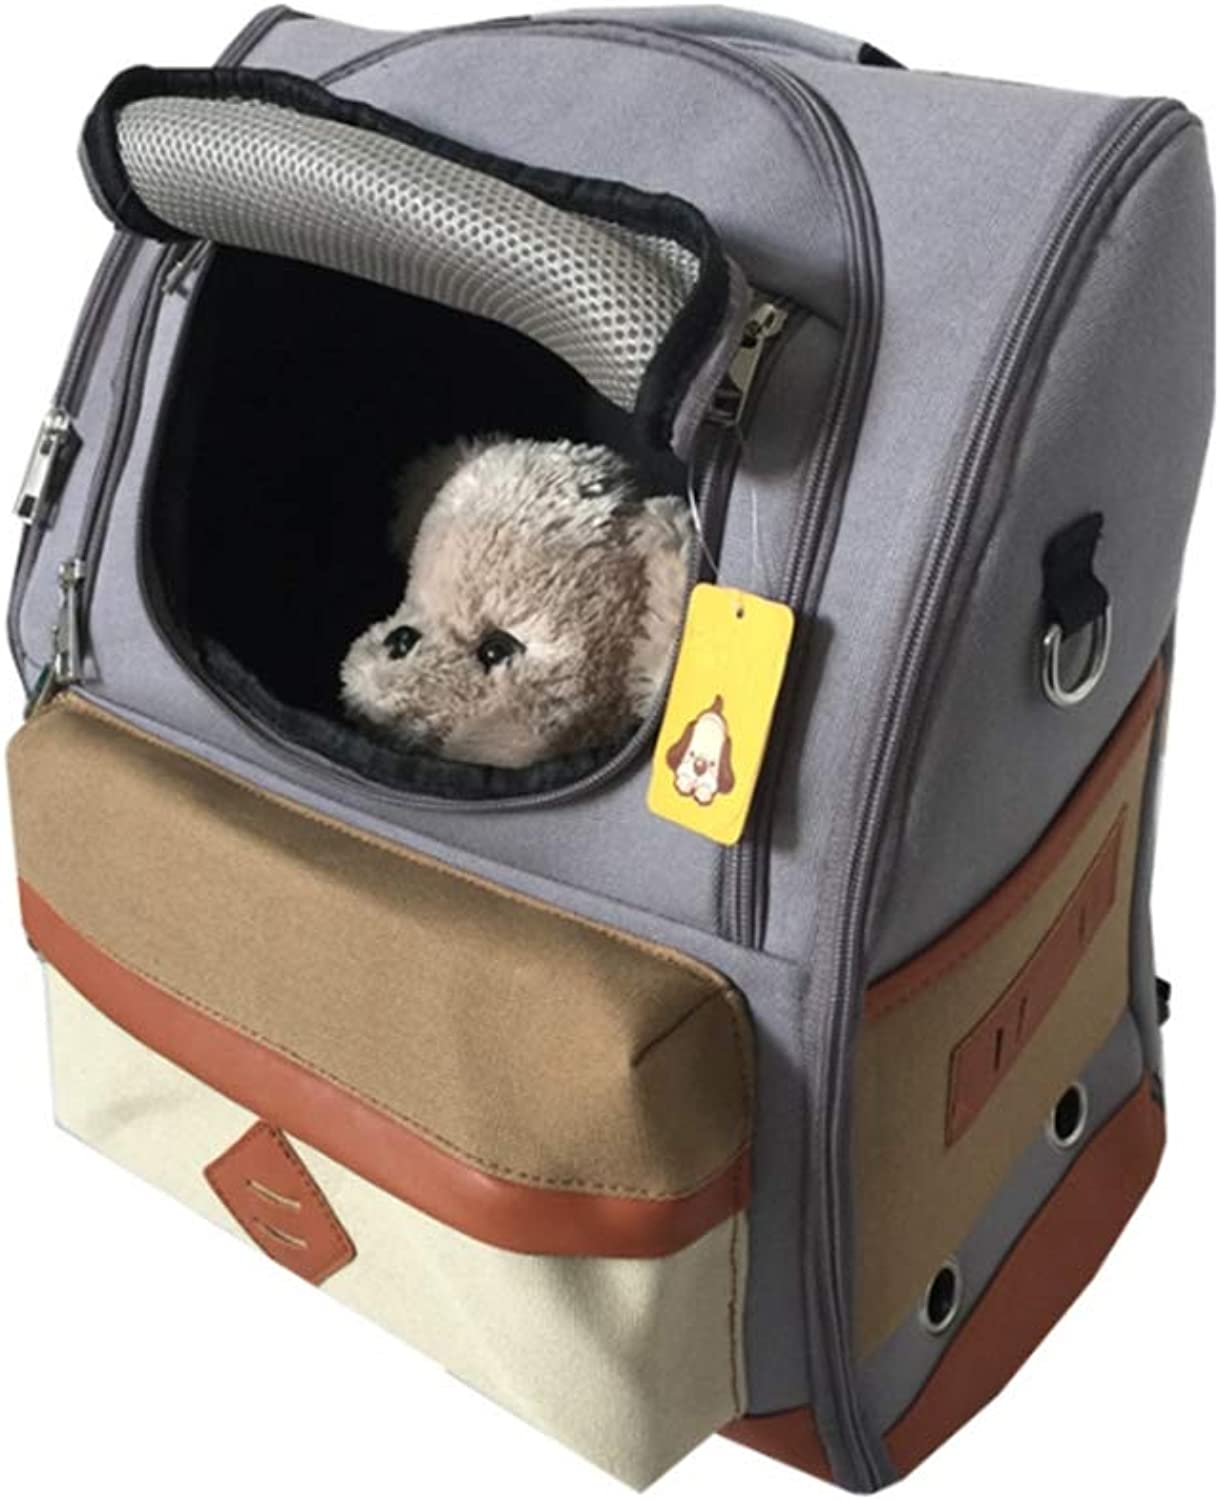 Pet Carrier Bags Handbags Travel Backpack Gear, SoftSided Travel Tote Shoulder Sling Bag for Dogs Cats, A